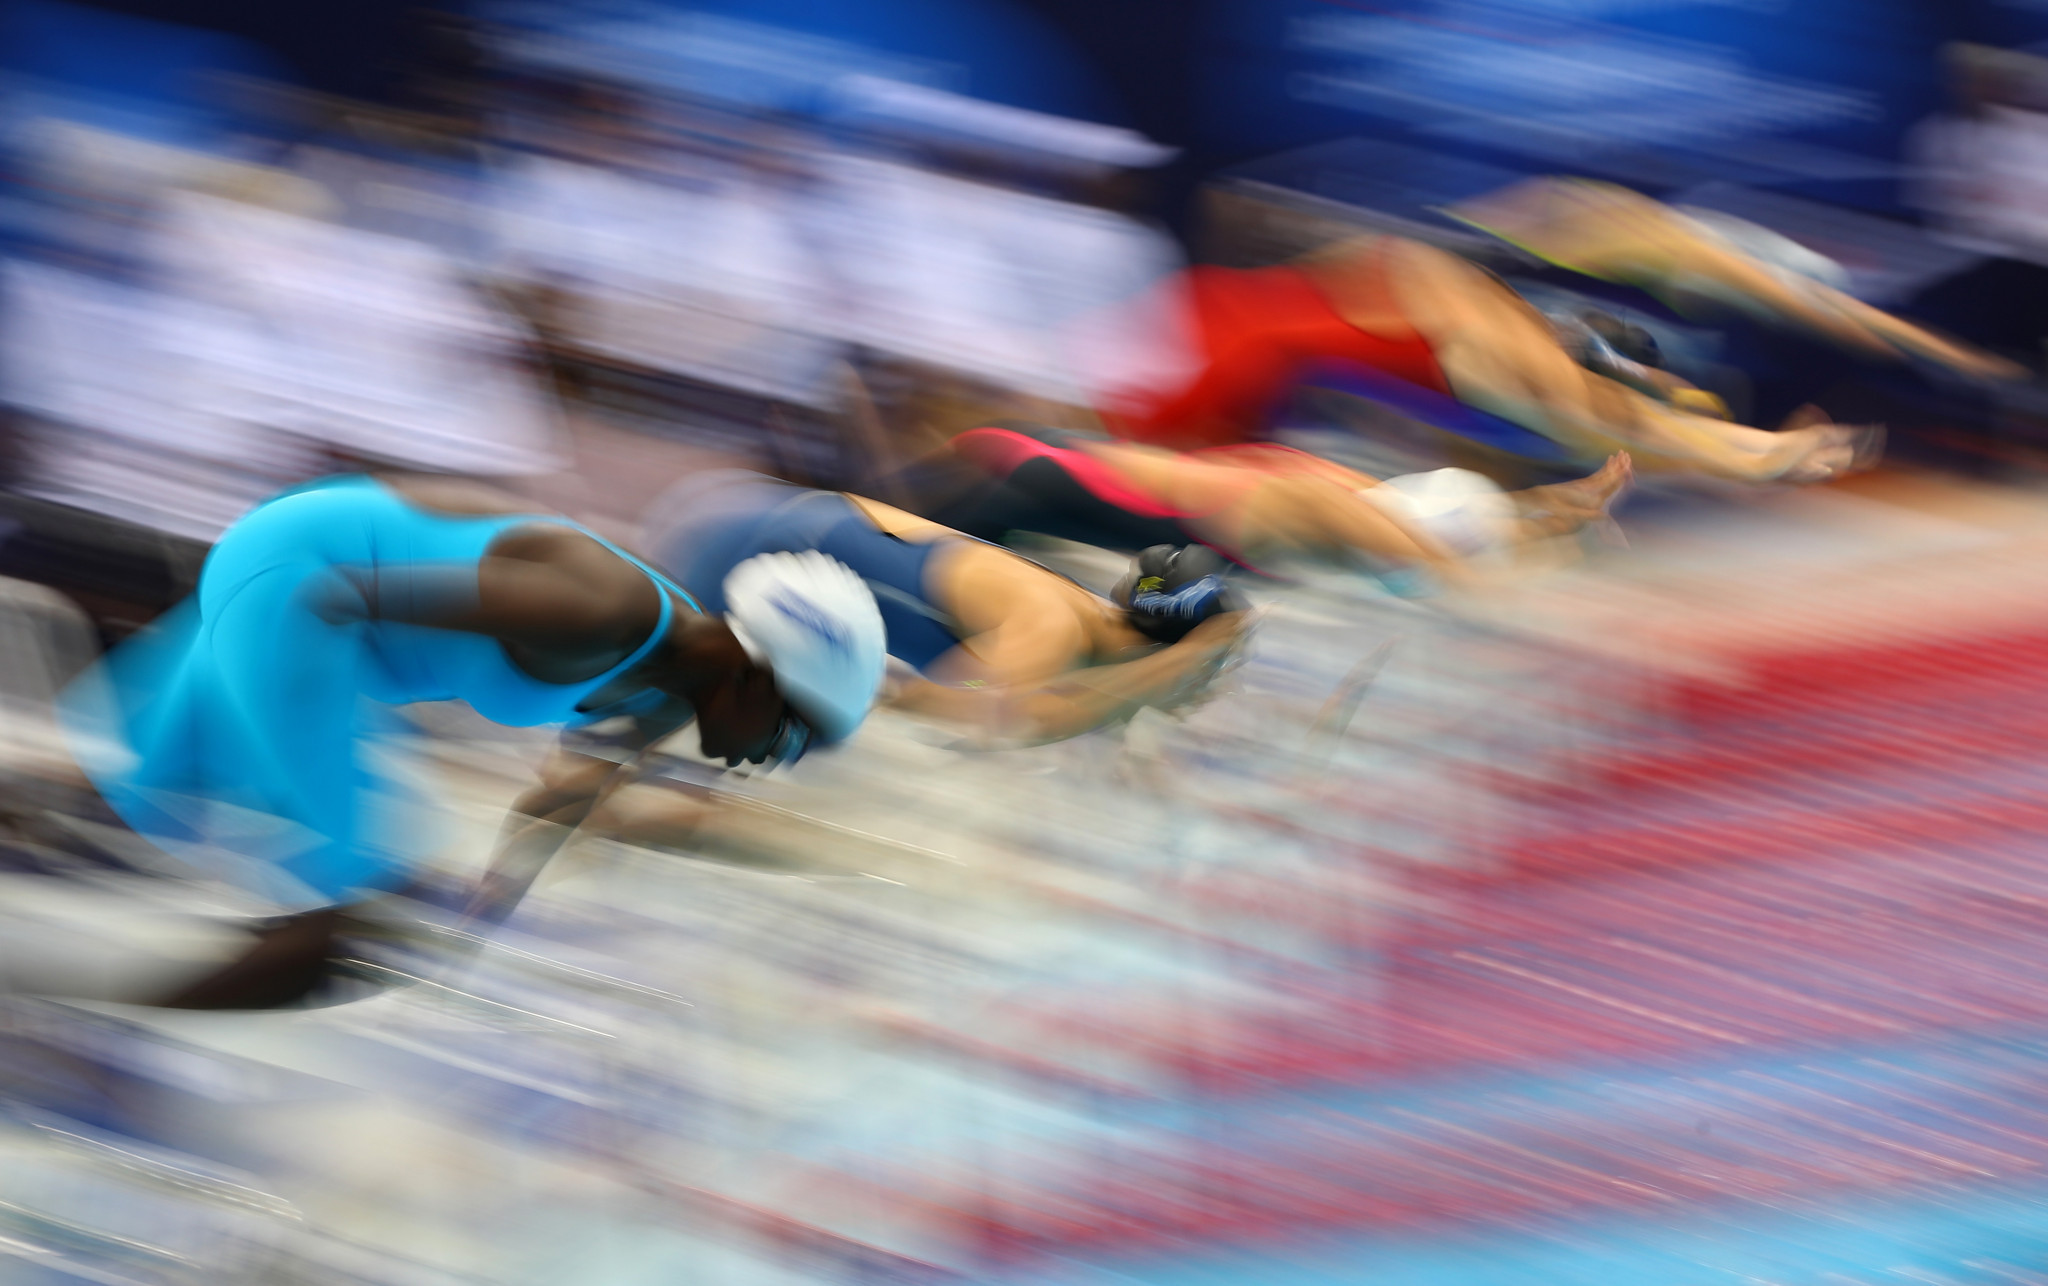 Around 400 athletes are set to compete at the Madeira 2020 European Championships in Portugal this month ©Getty Images